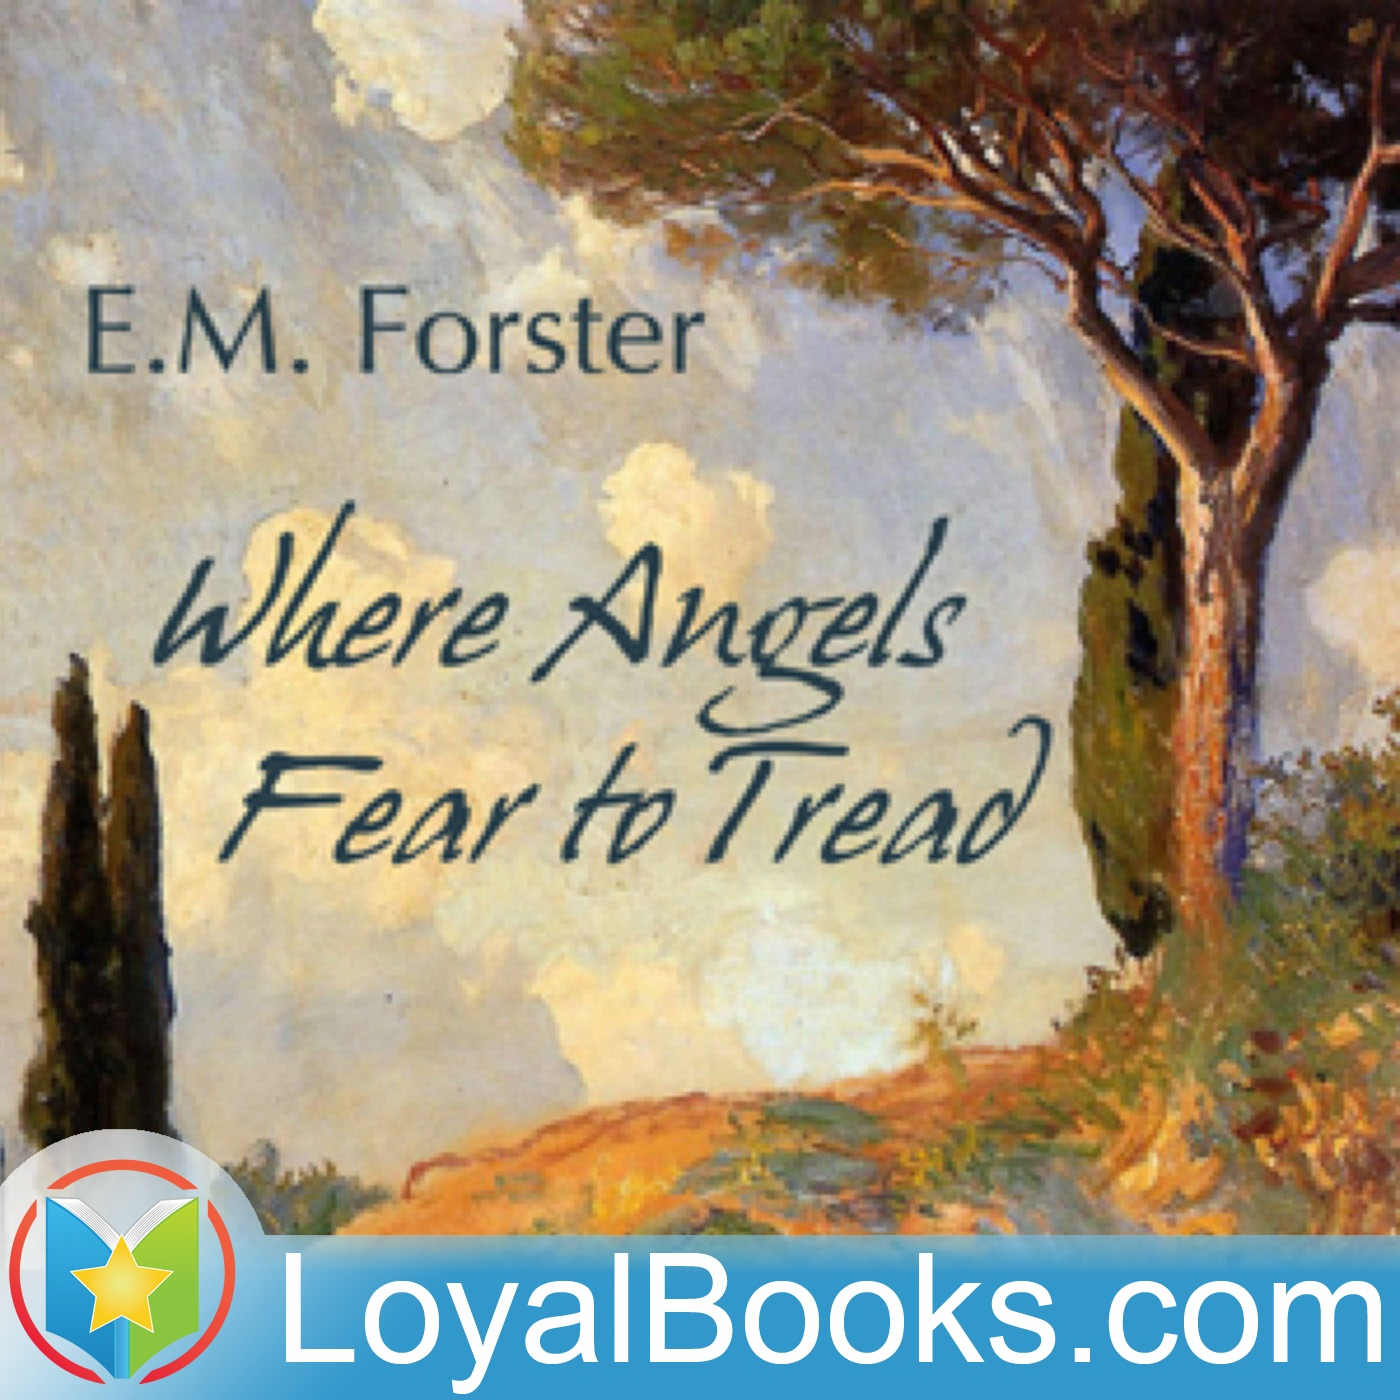 <![CDATA[Where Angels Fear to Tread by Edward M. Forster]]>